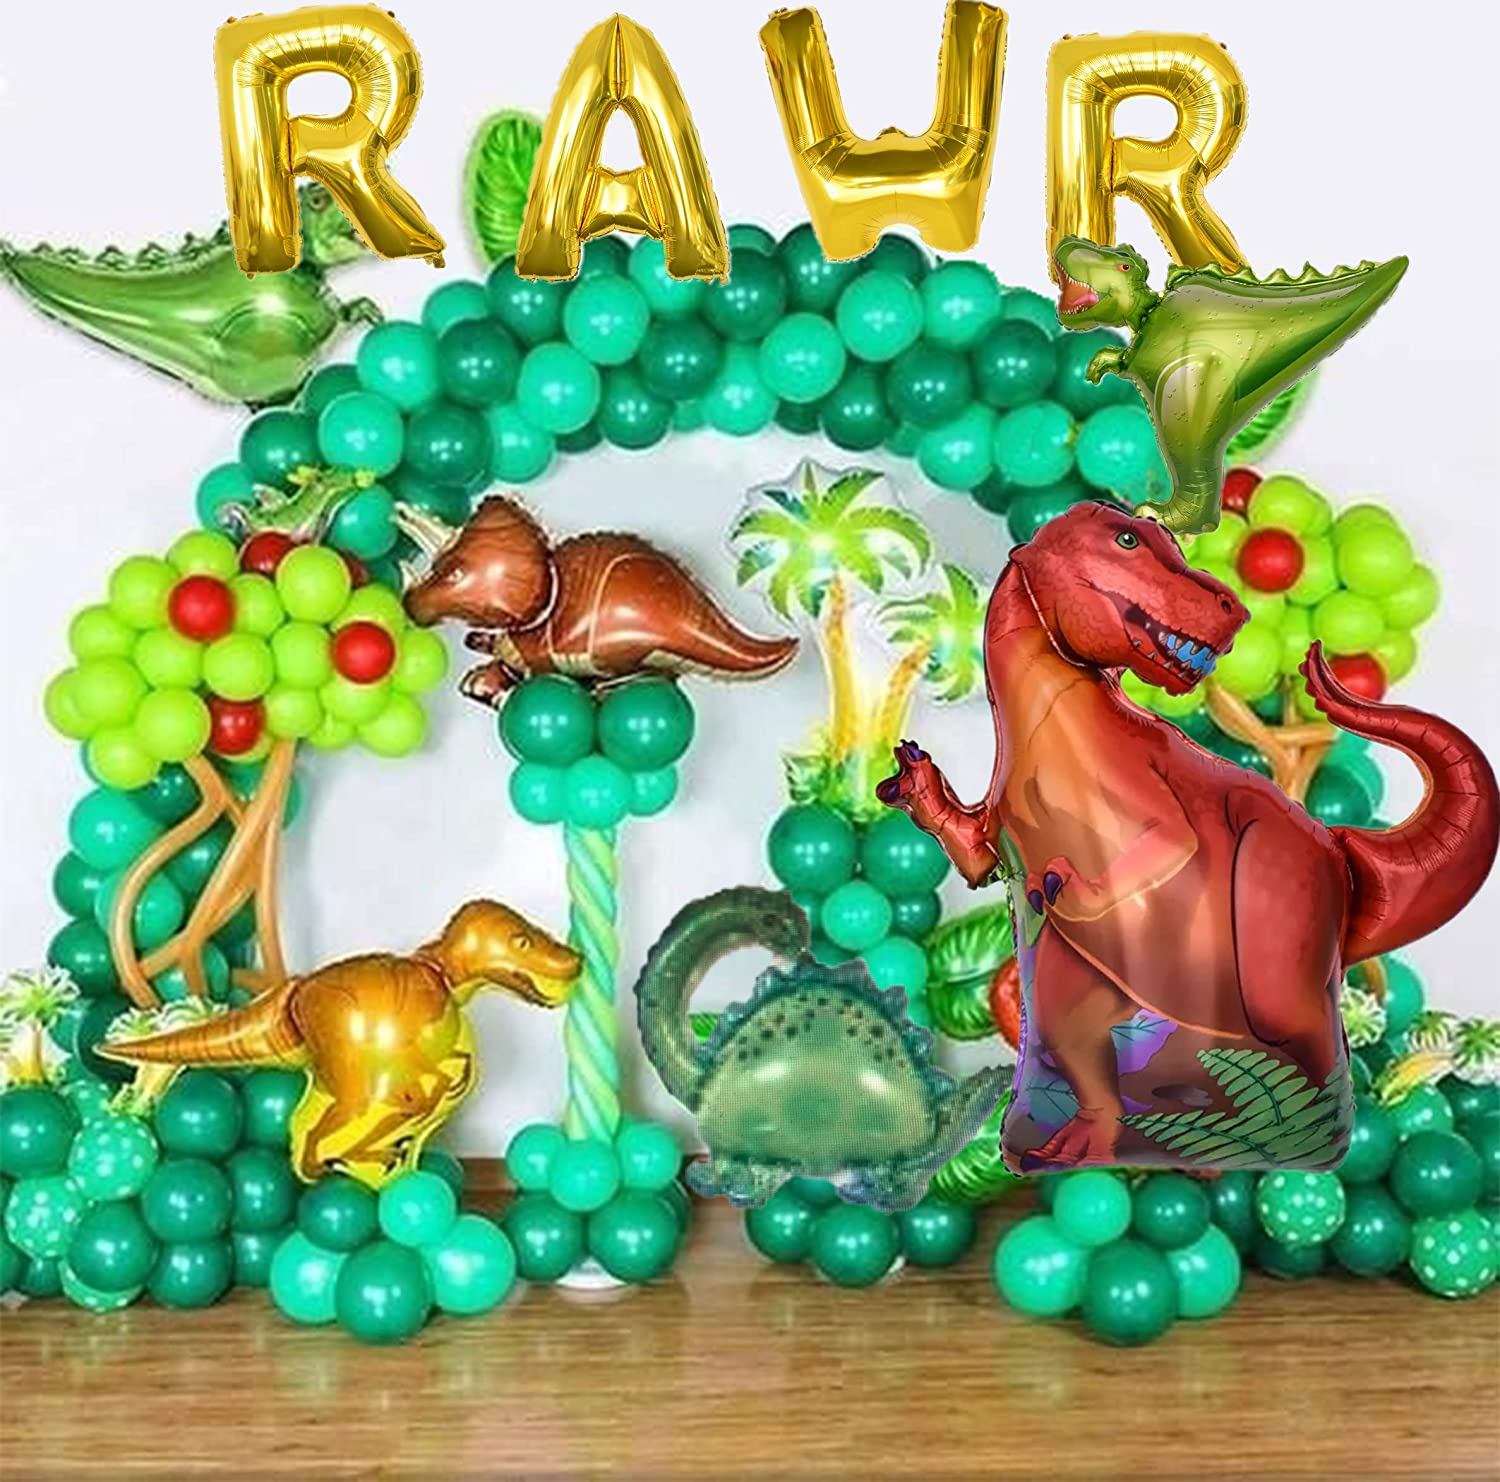 OMG Party Factory - Dinosaur Balloons Mylar Foil Birthday Party Decorations Dinosaur Party Supplies 4 Year Old(Roar IM Four)